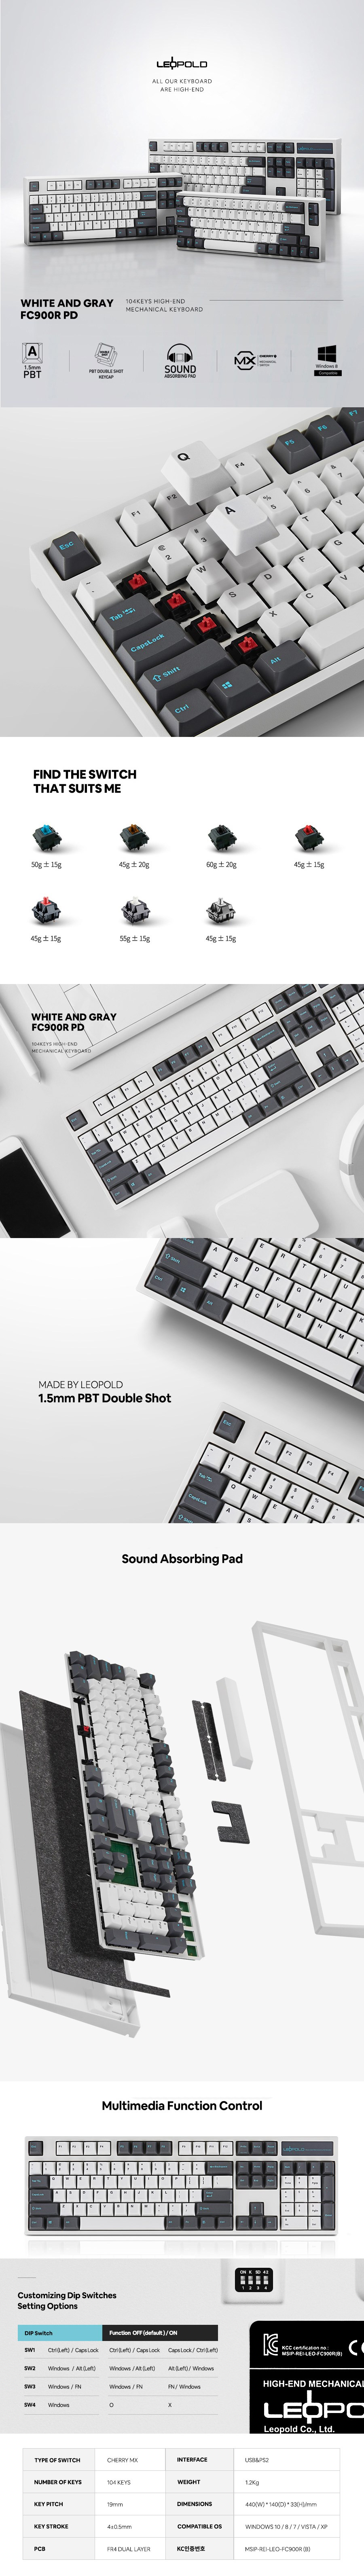 Leopold FC900R PD Grey/White Two-Tone Mechanical Keyboard - Cherry MX Silver - Overview 1